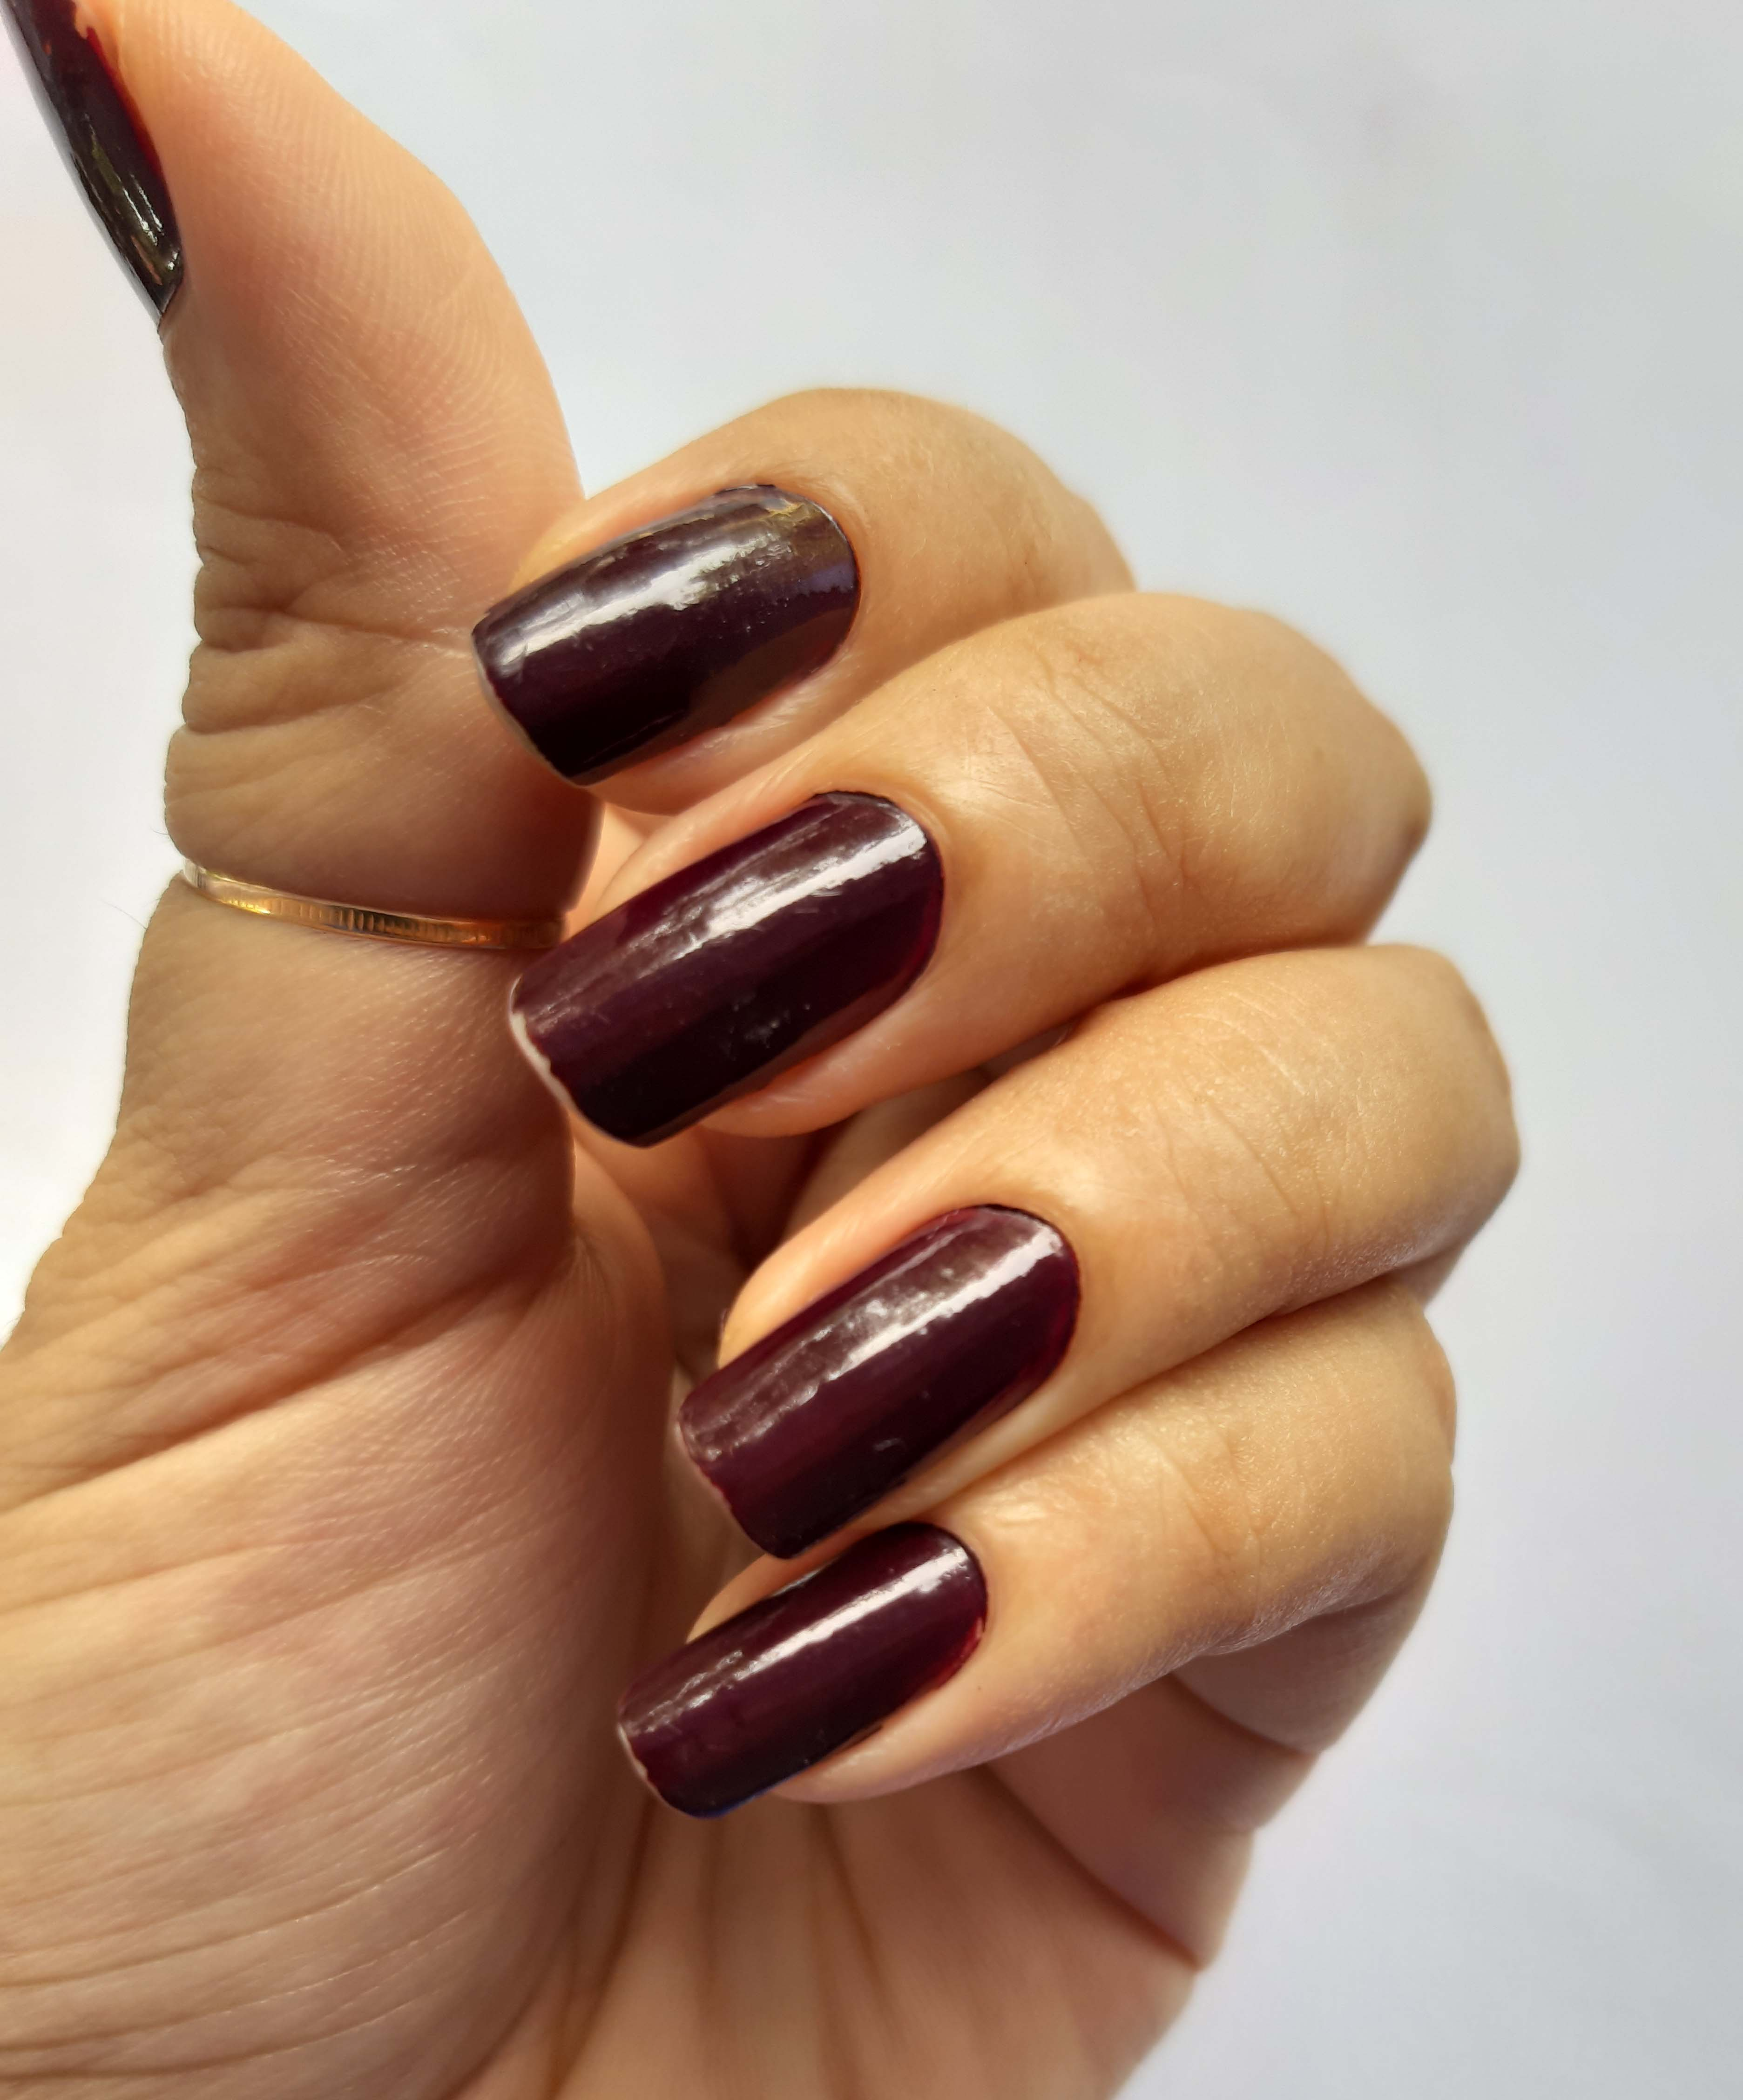 nail swatch of Primark PS Gel Effect Longwear & one coat Nail polish wine